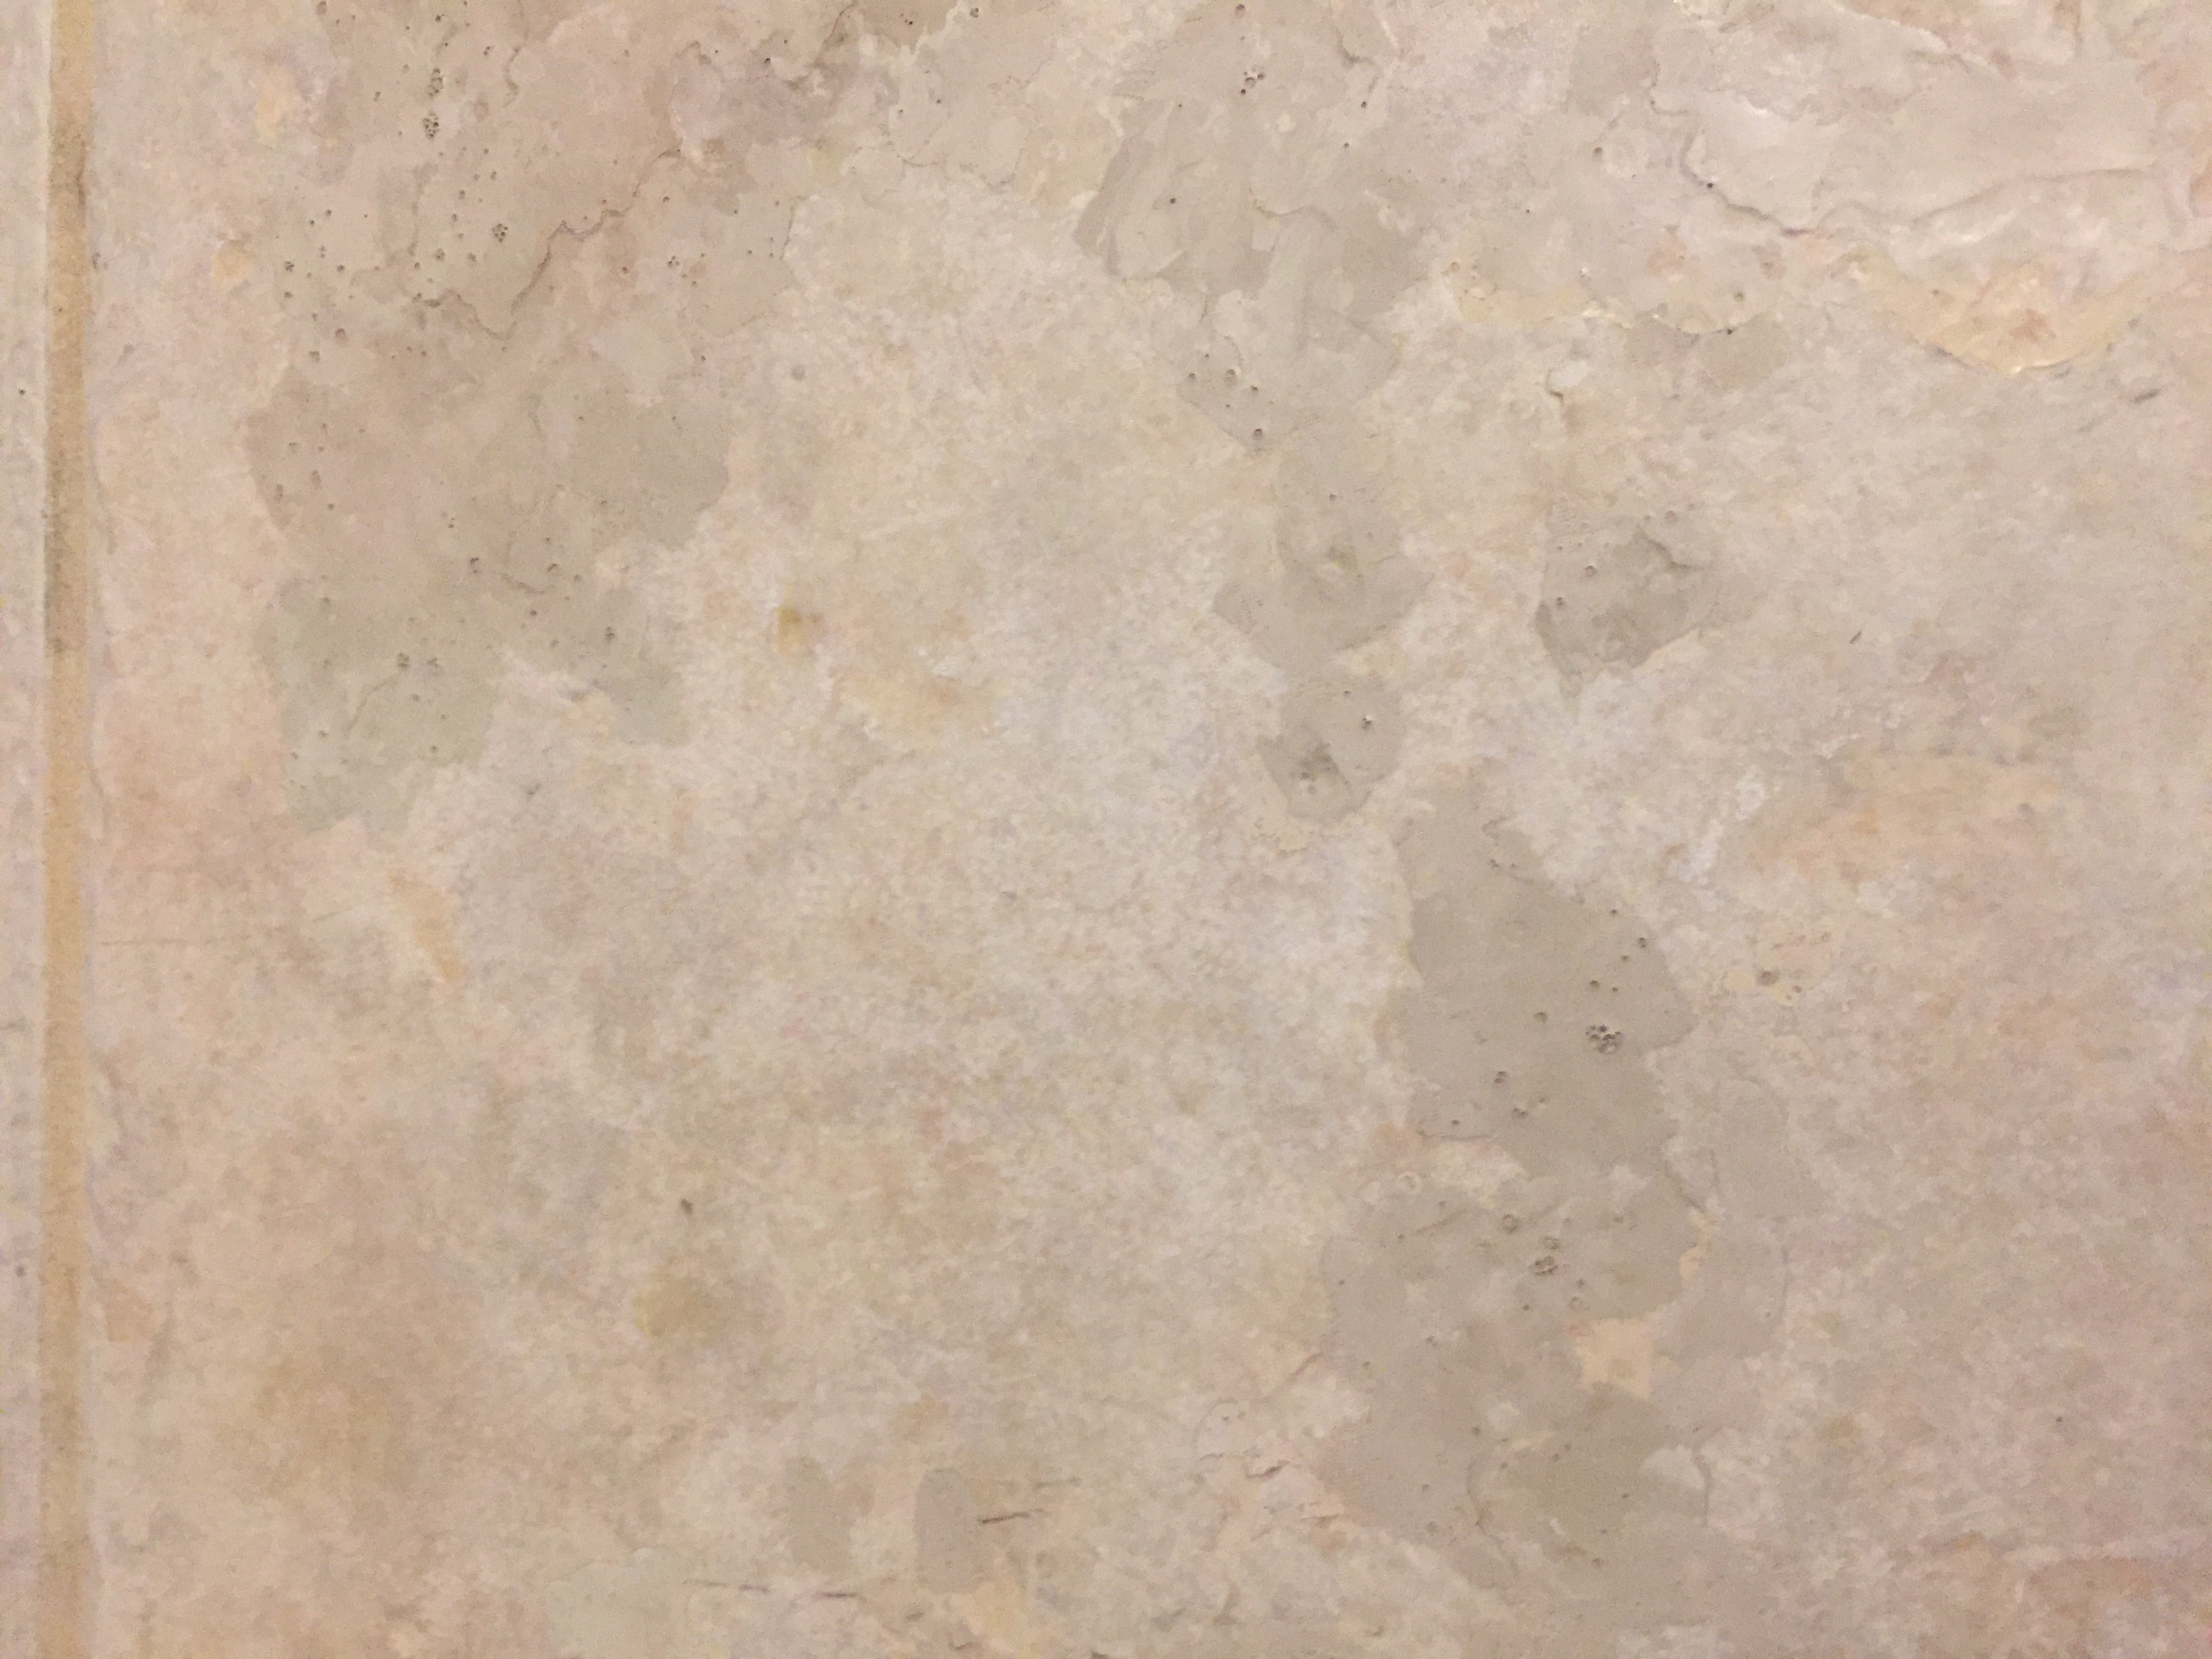 Shower tile repair Why Fixing What's Broken Helps Your Finances www.thethreeyearexperiment.com